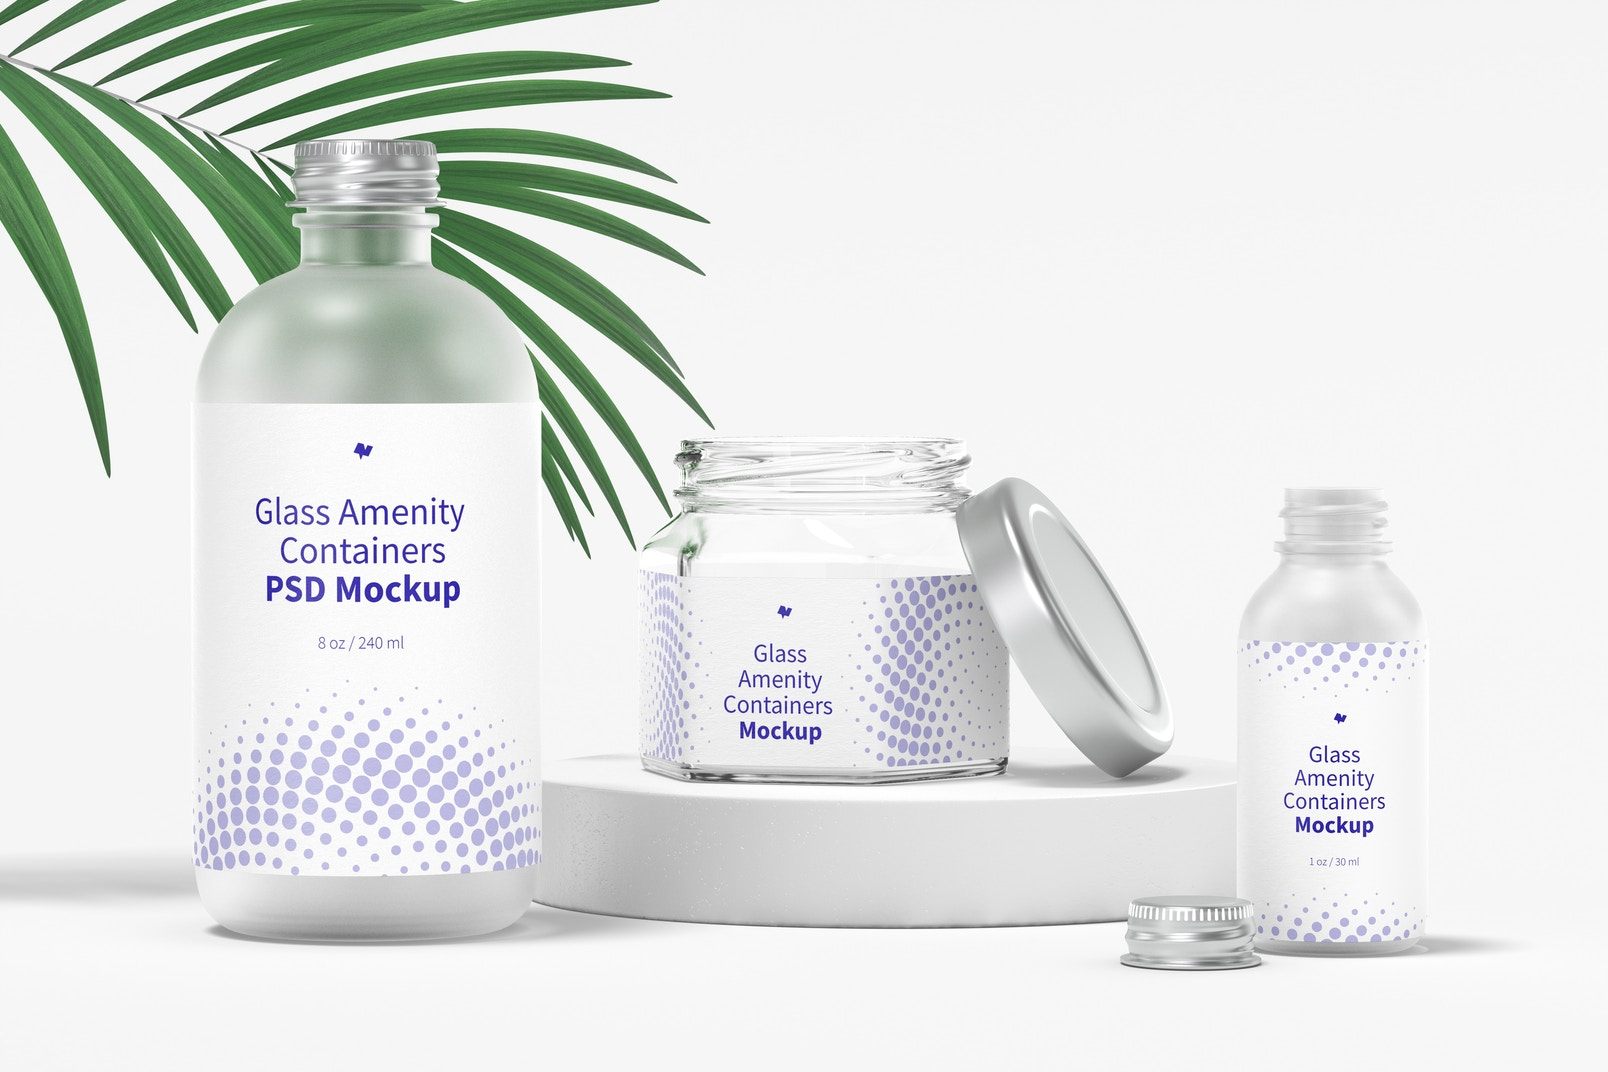 Glass Amenity Containers Mockup, Opened